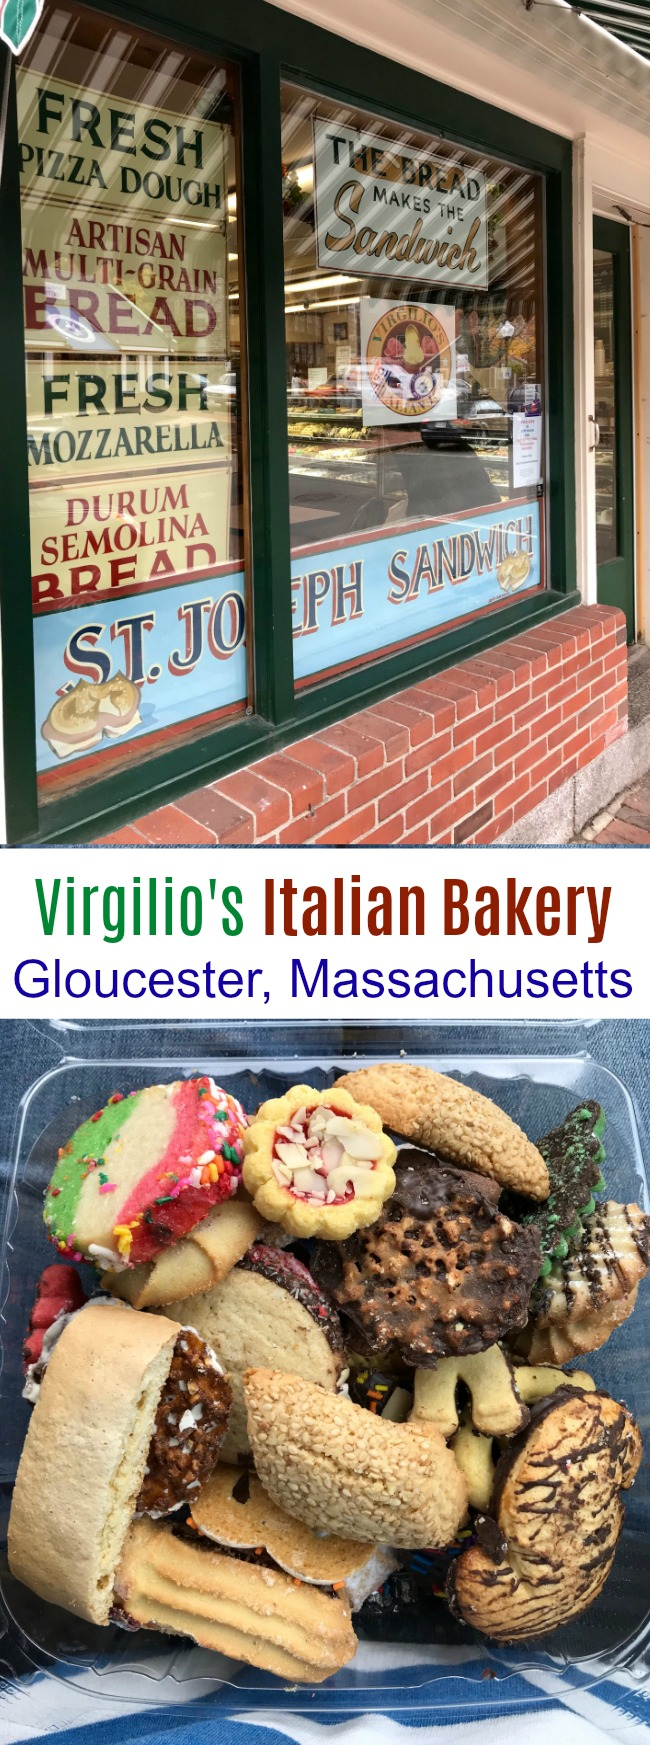 Virgilio's Italian Bakery – Gloucester, Massachusetts